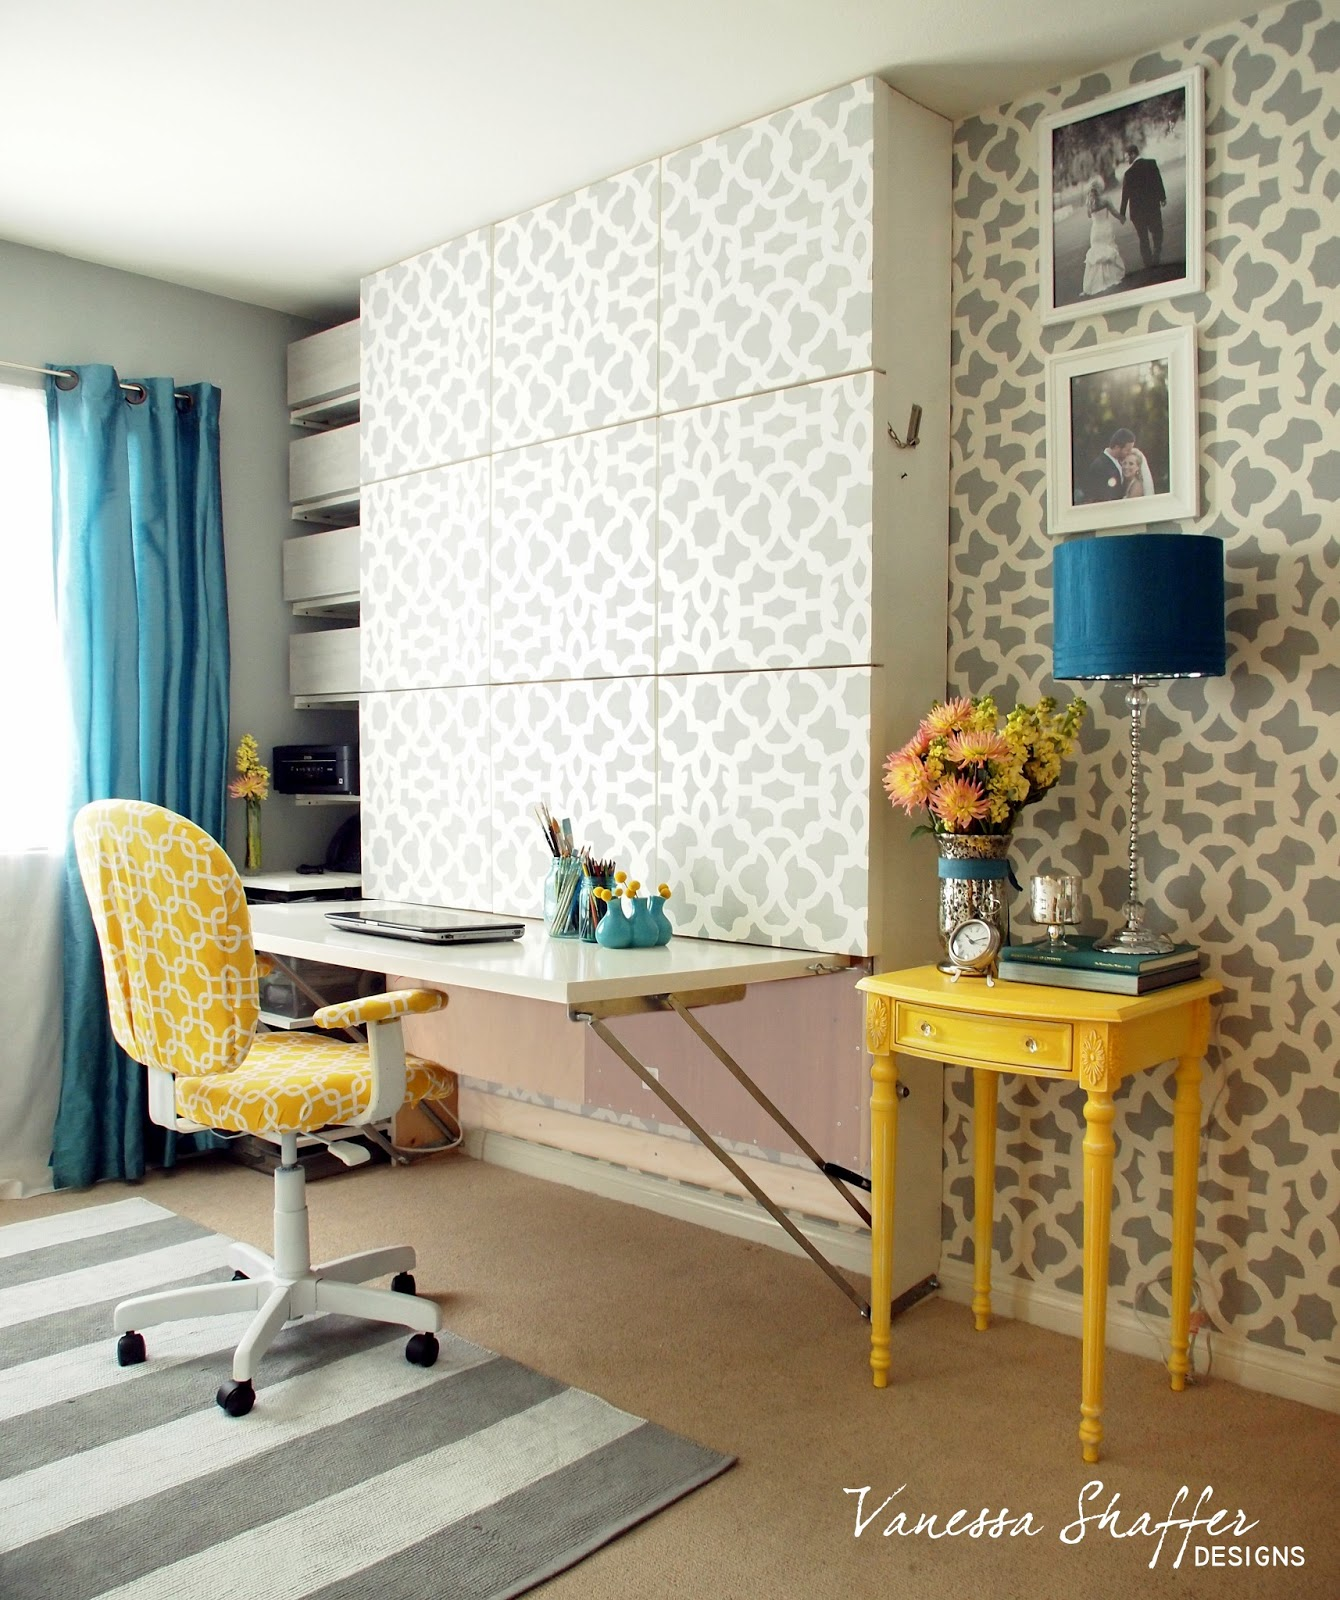 Small Space Solution: The Murphy Bed/Desk